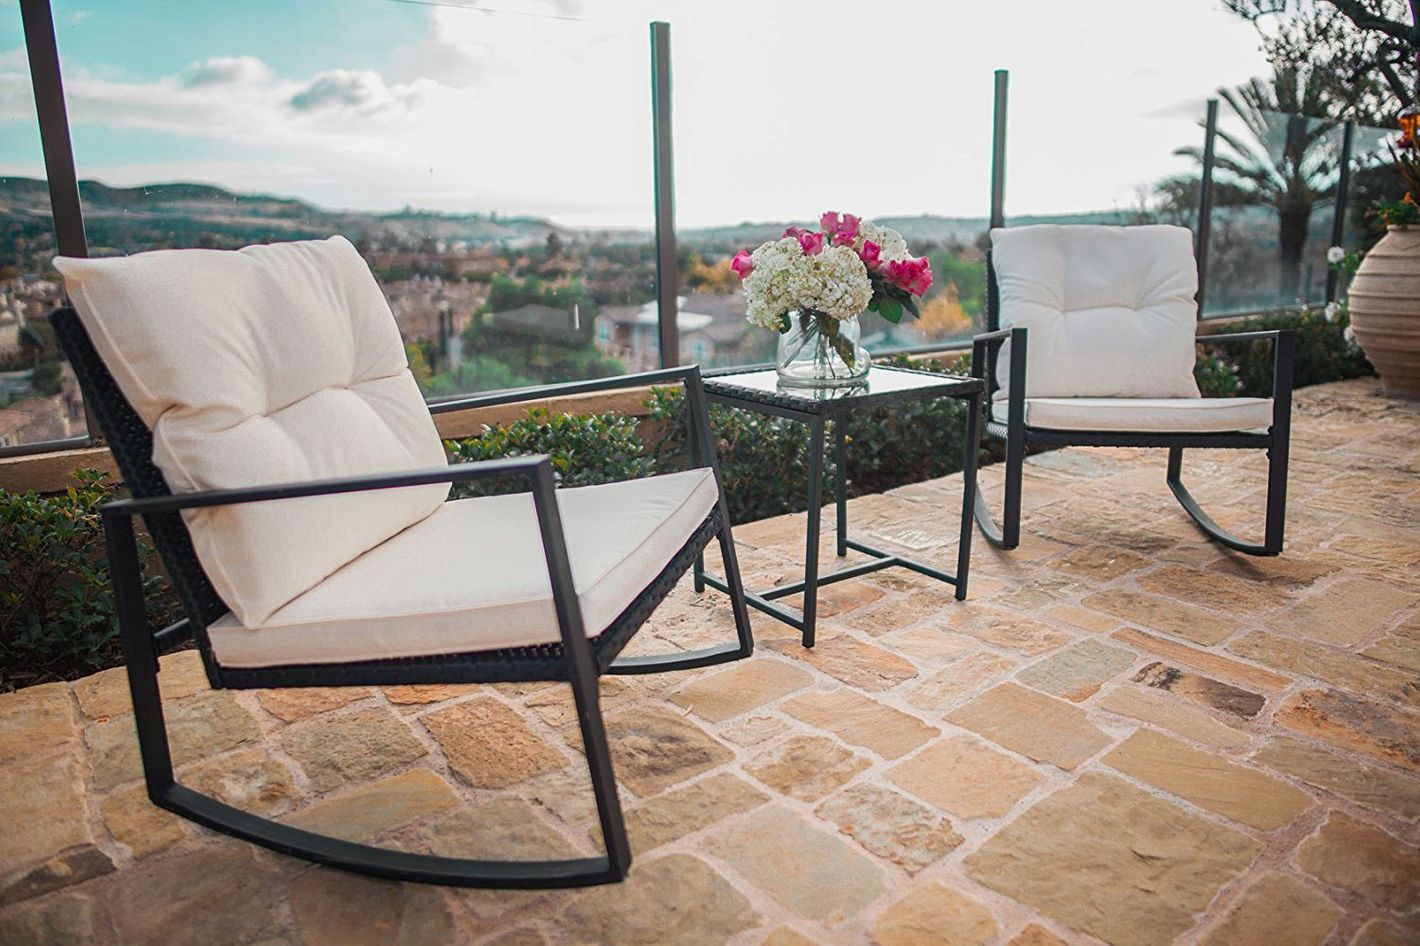 The Best Patio Furniture Sets According To Hypehusiastic Reviewers